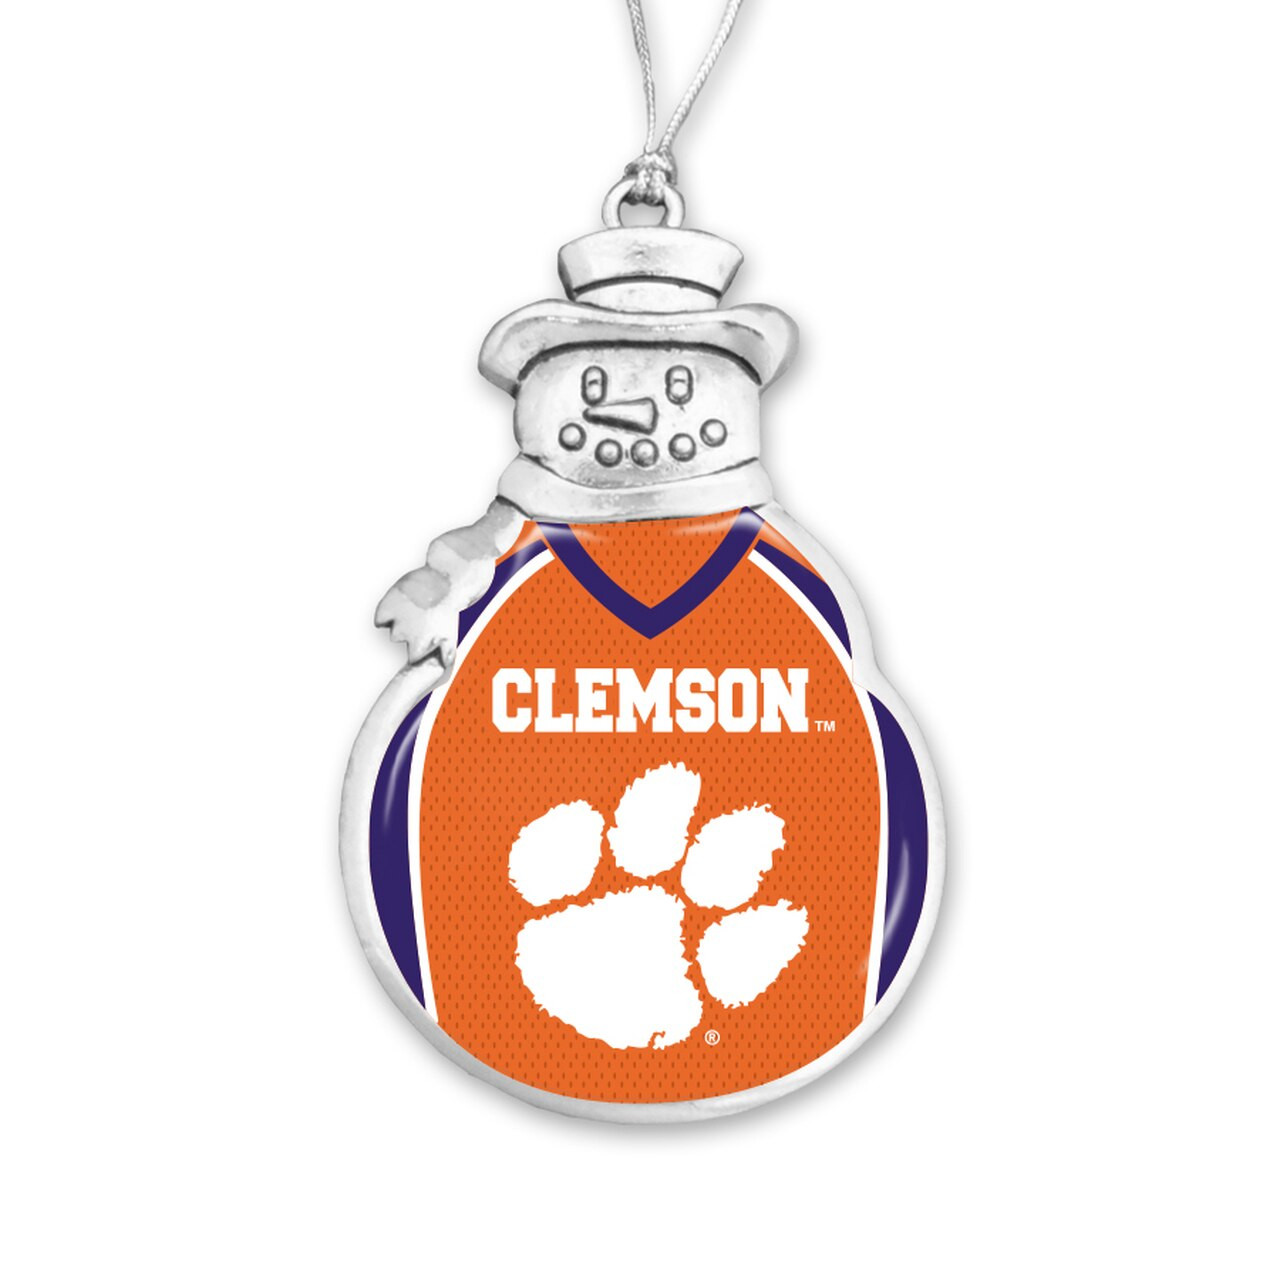 From the Heart University of Wisconsin Christmas Ornament Snowman with Football Jersey